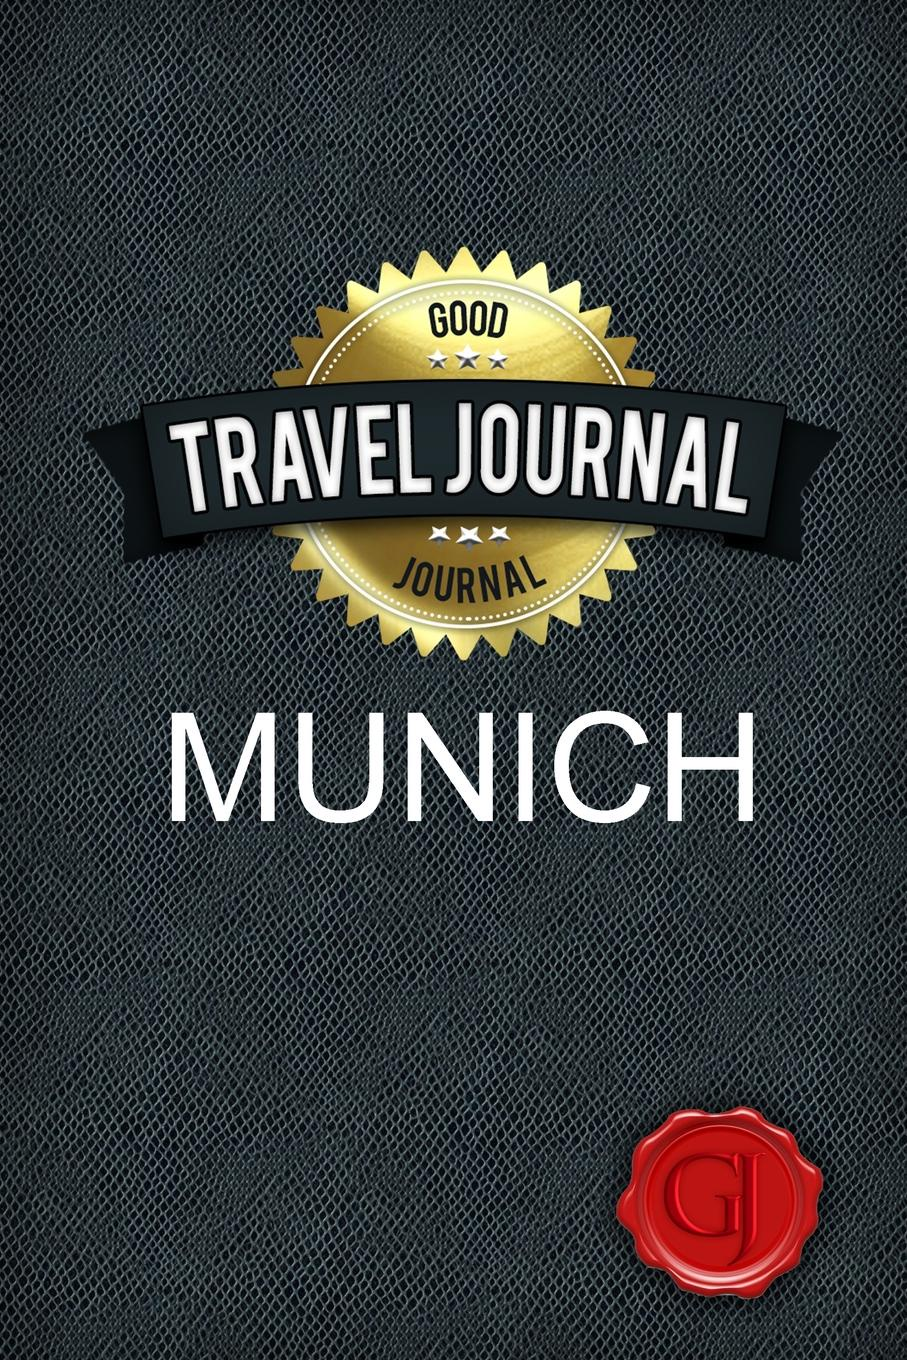 Good Journal Travel Journal Munich